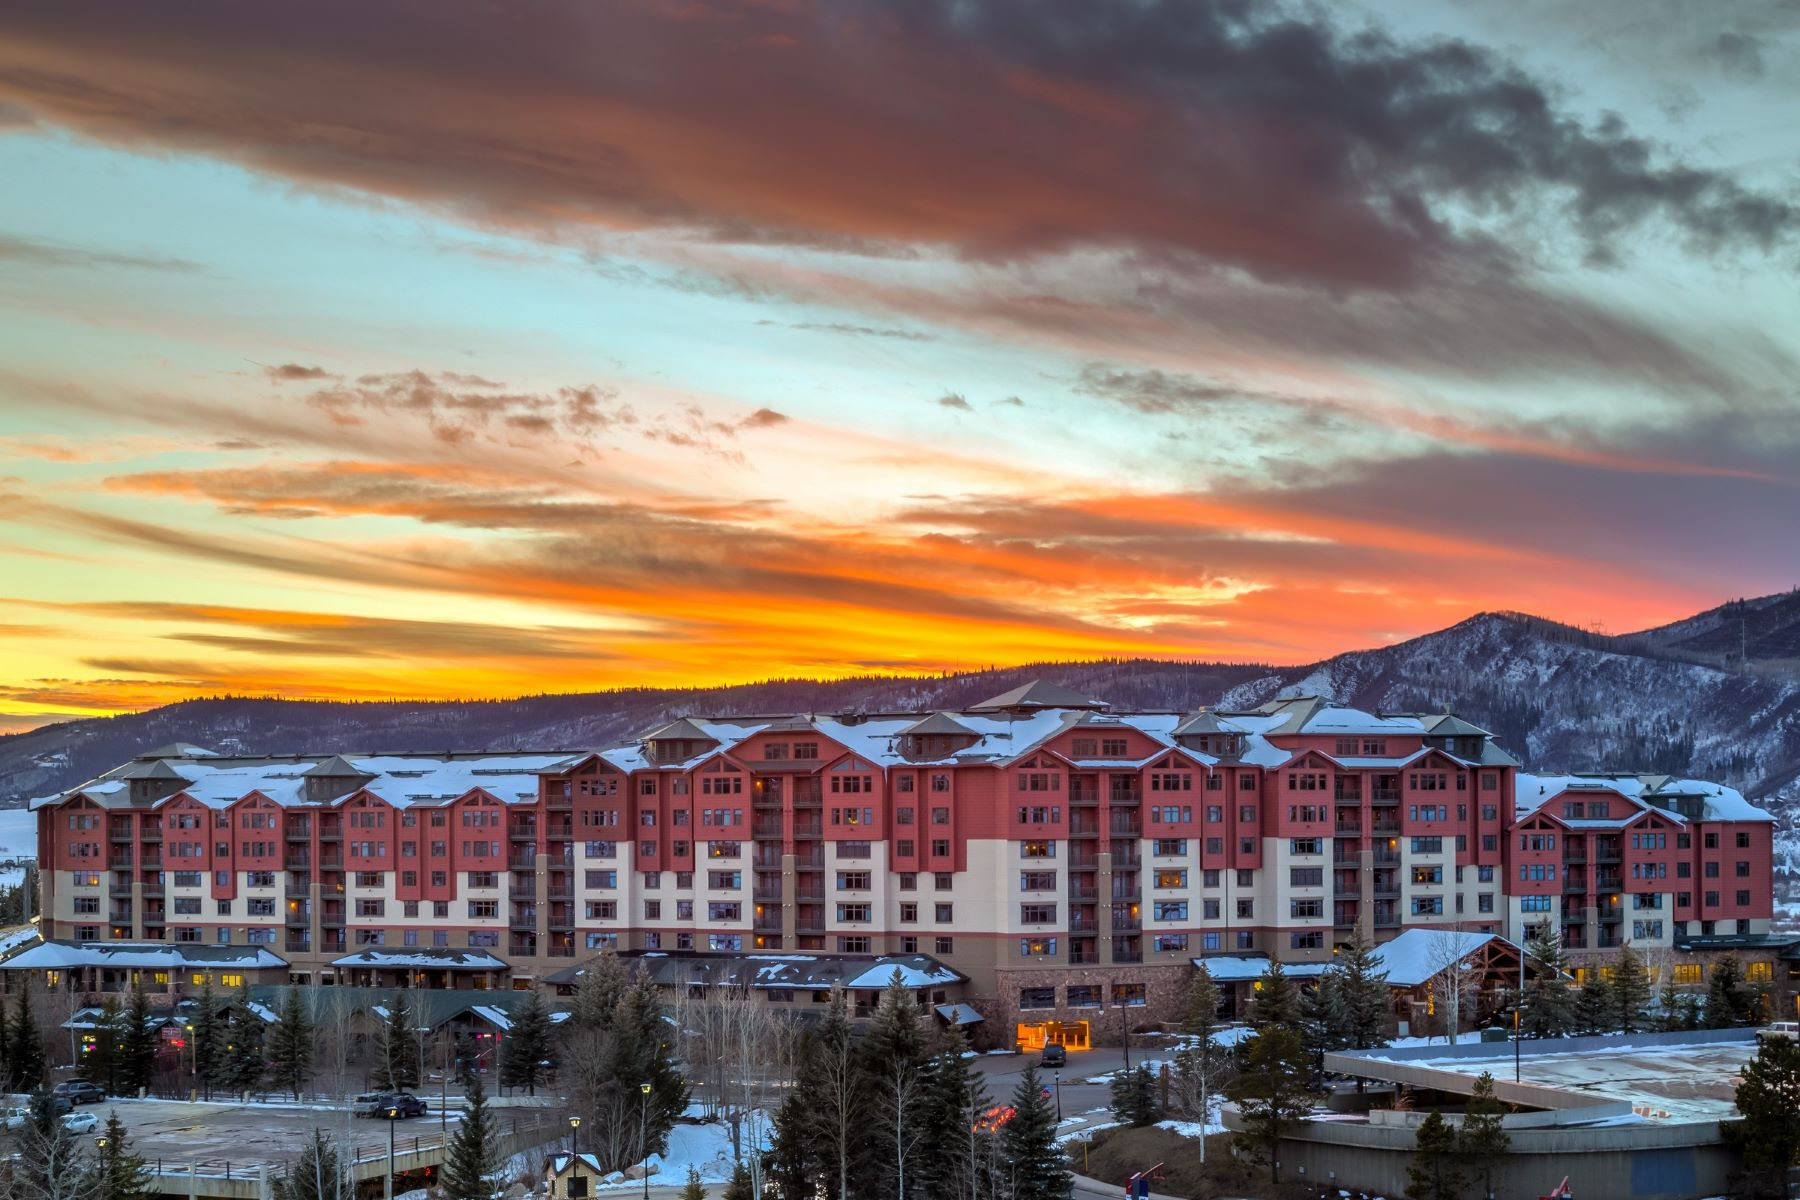 Fractional Ownership for Sale at Steamboat Grand Resort 2300 Mt. Werner Cir 706 QI & QII Steamboat Springs, Colorado 80487 United States